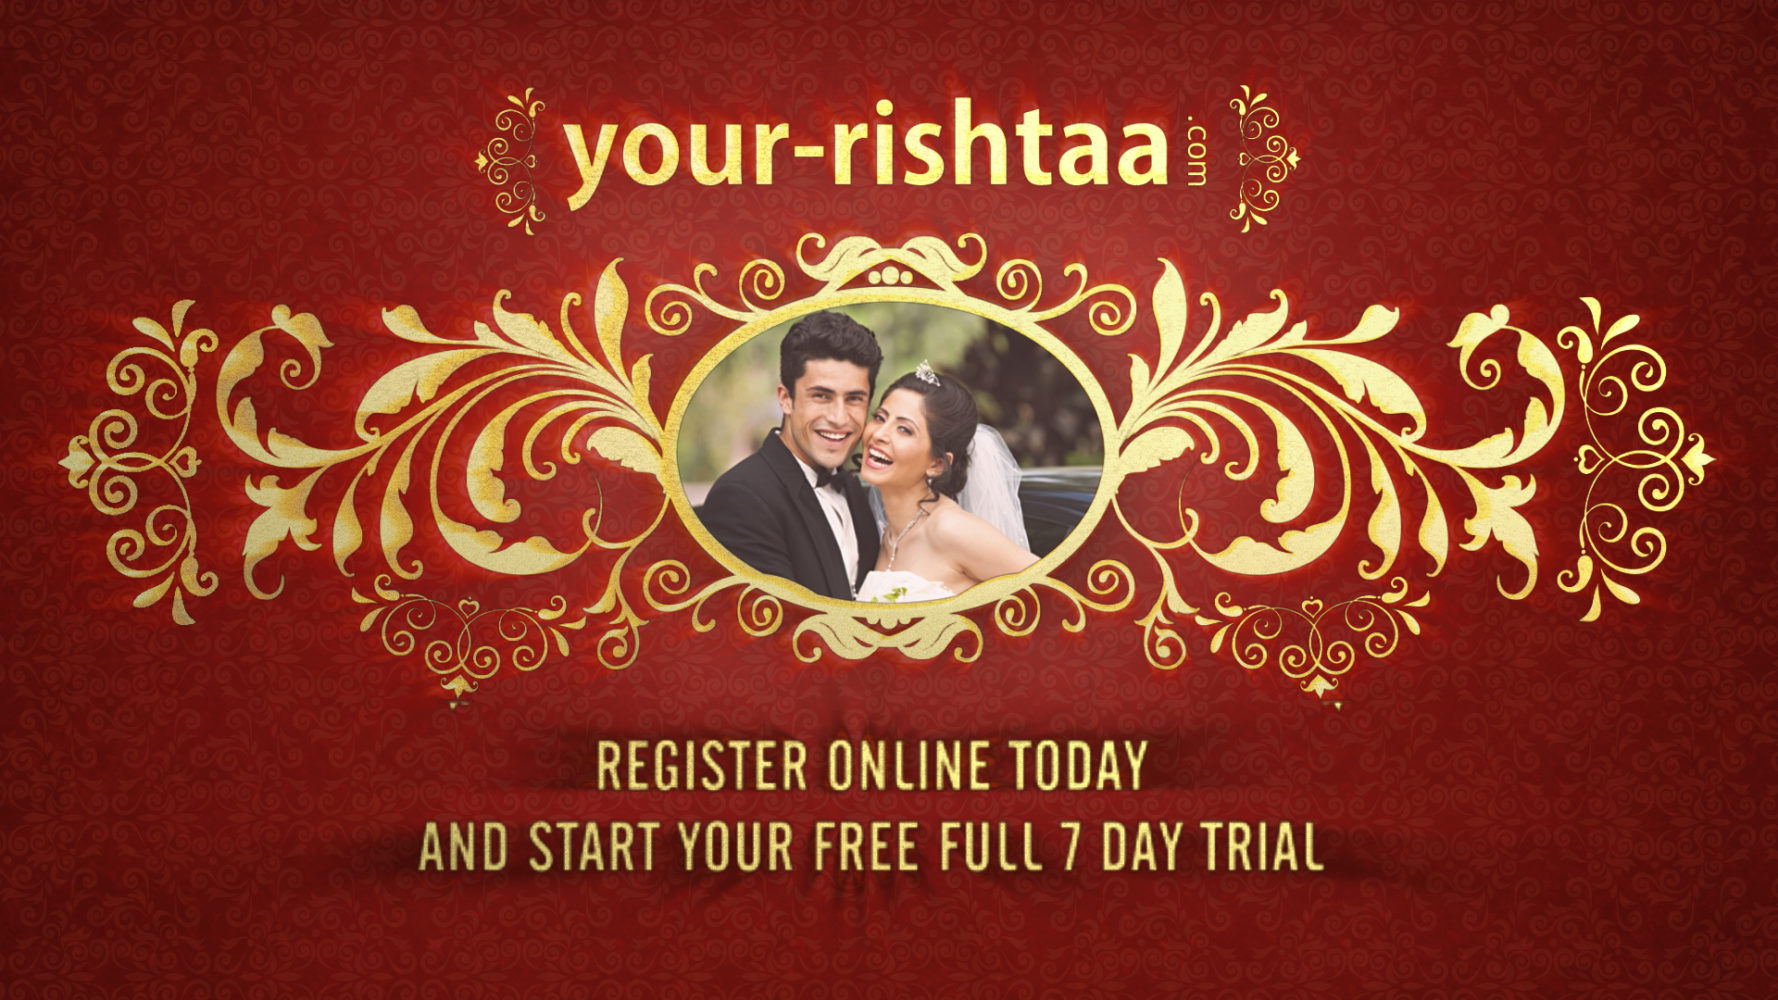 Your Rishtaa matrimonial site TV advert